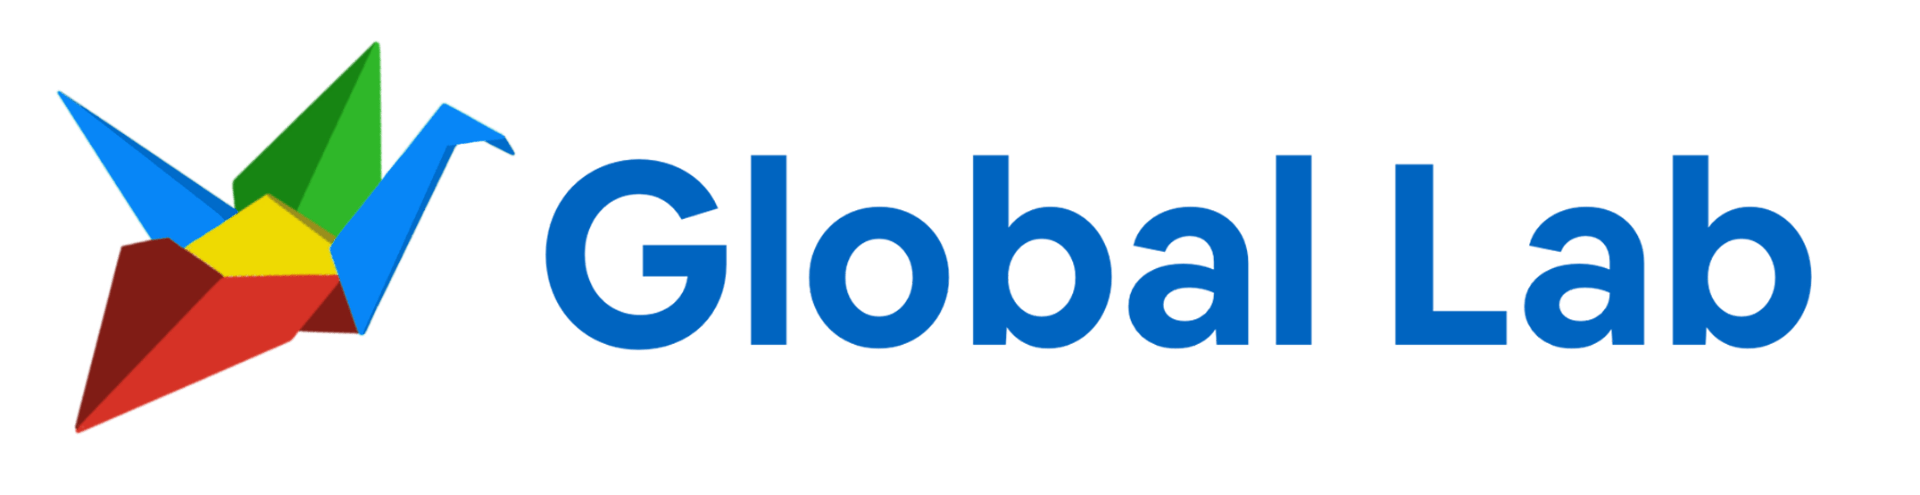 THE GLOBAL LAB